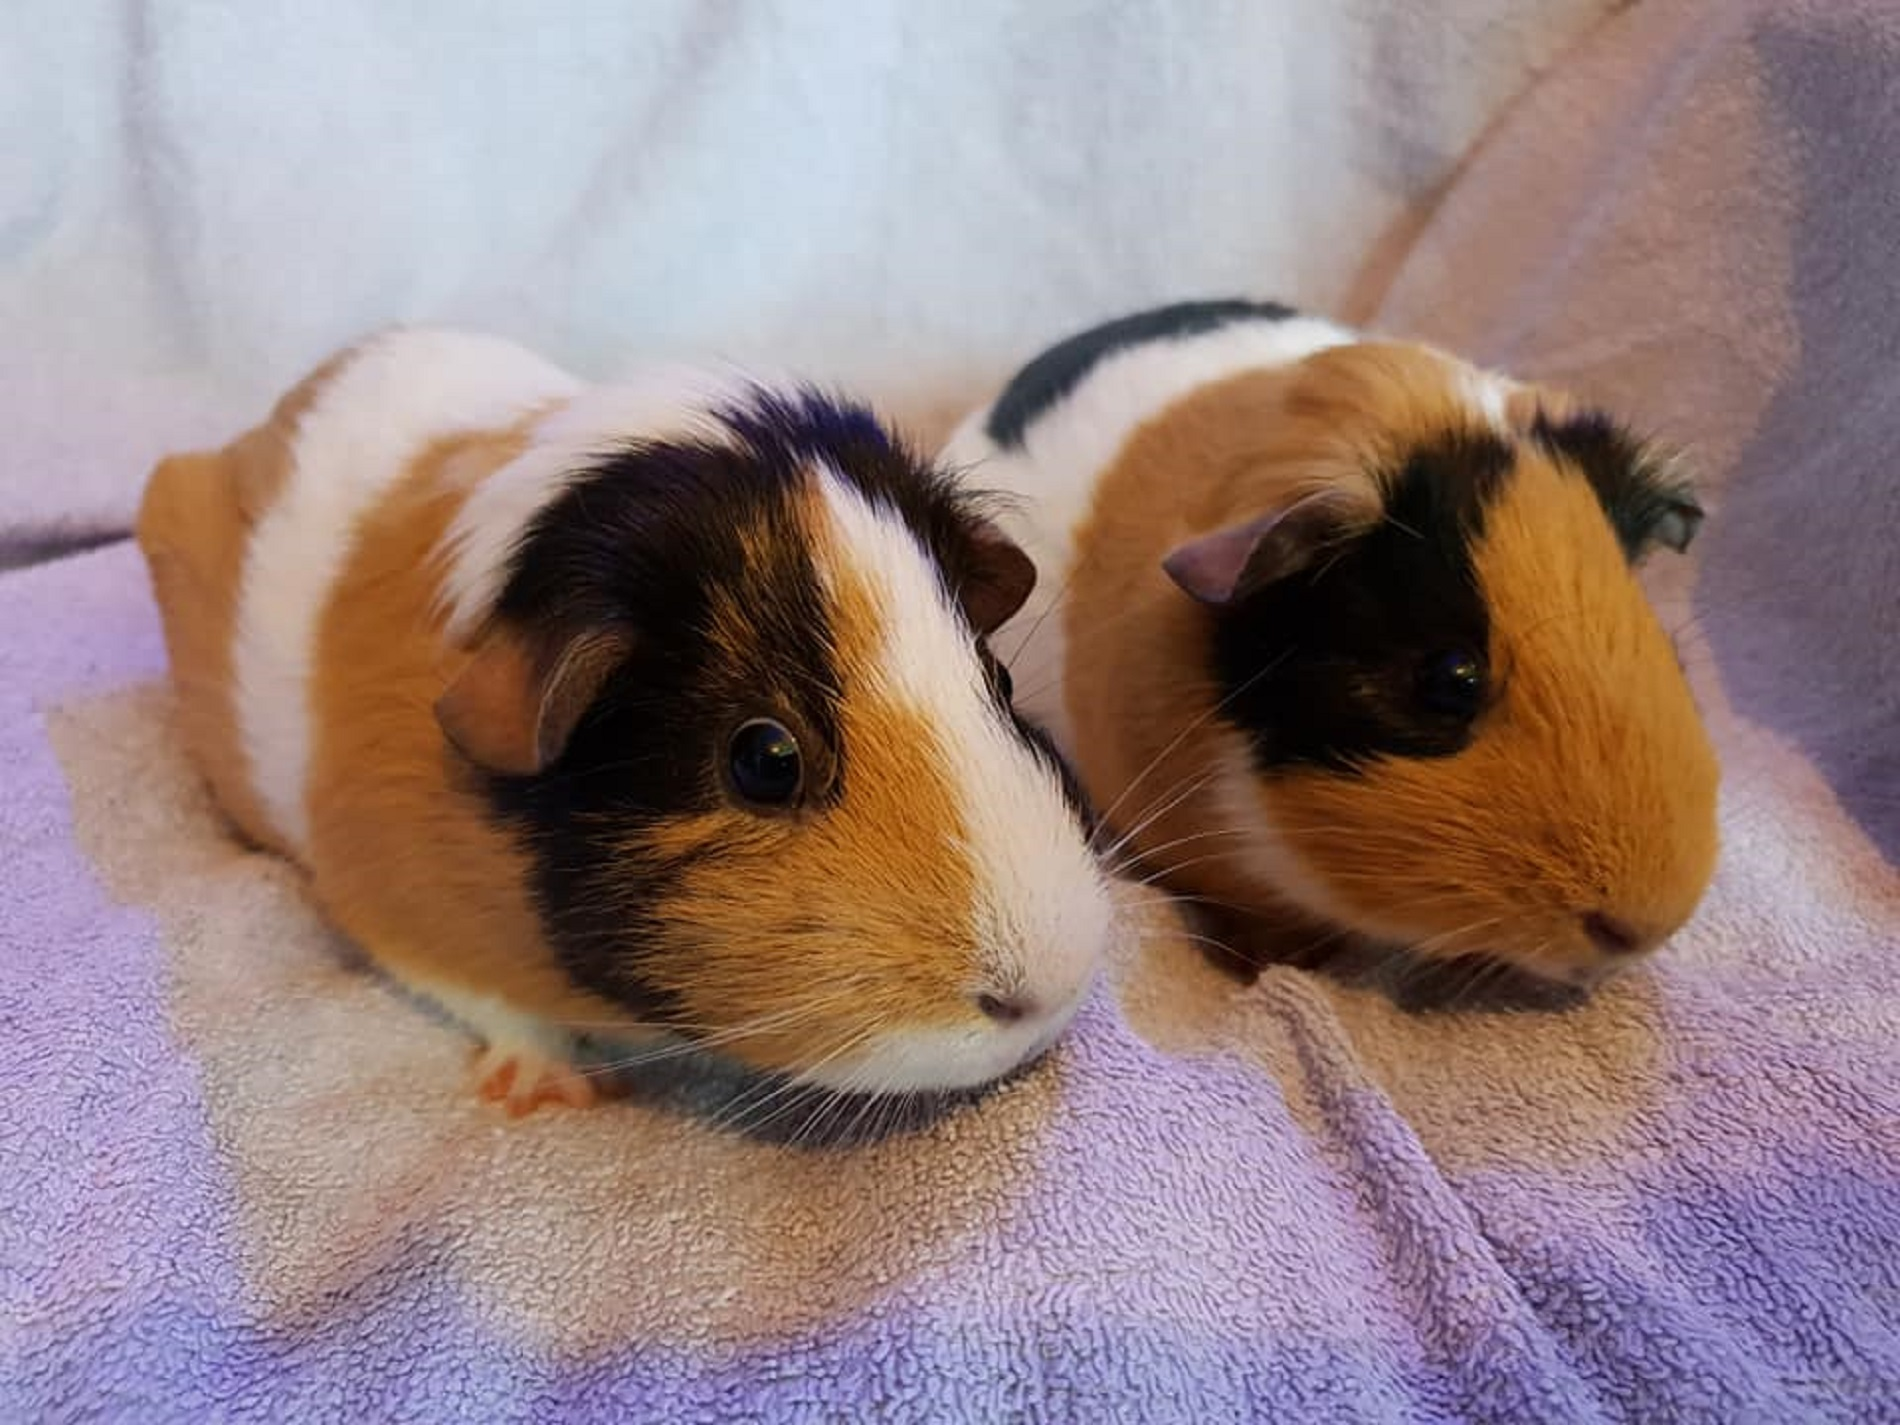 Fudge & Toffee August 11th 2019